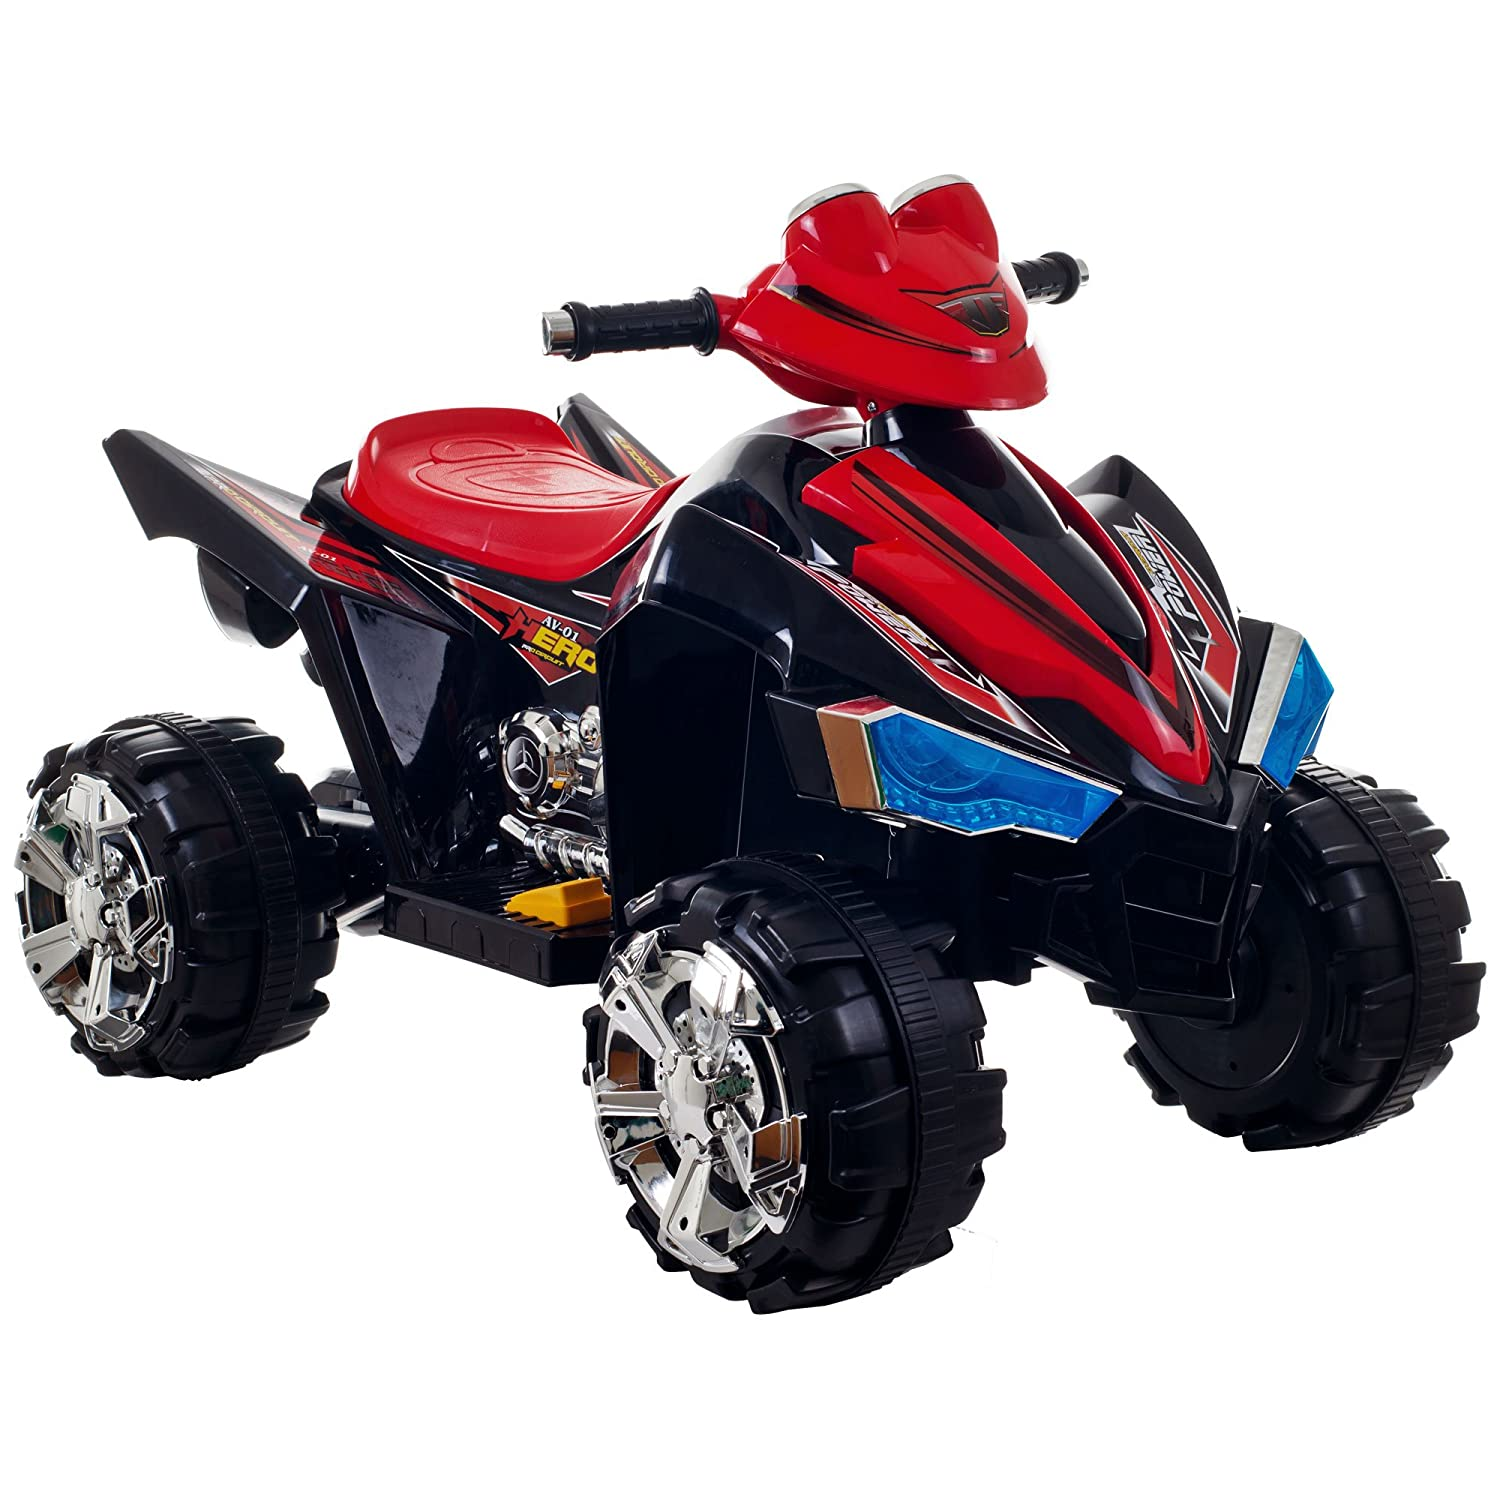 Amazon.com: Ride On Toy Quad, Battery Powered Ride On Toy ATV Four Wheeler  With Sound Effects by Lil' Rider – Toys for Boys and Girls, 2 - 5 Year Olds  ...